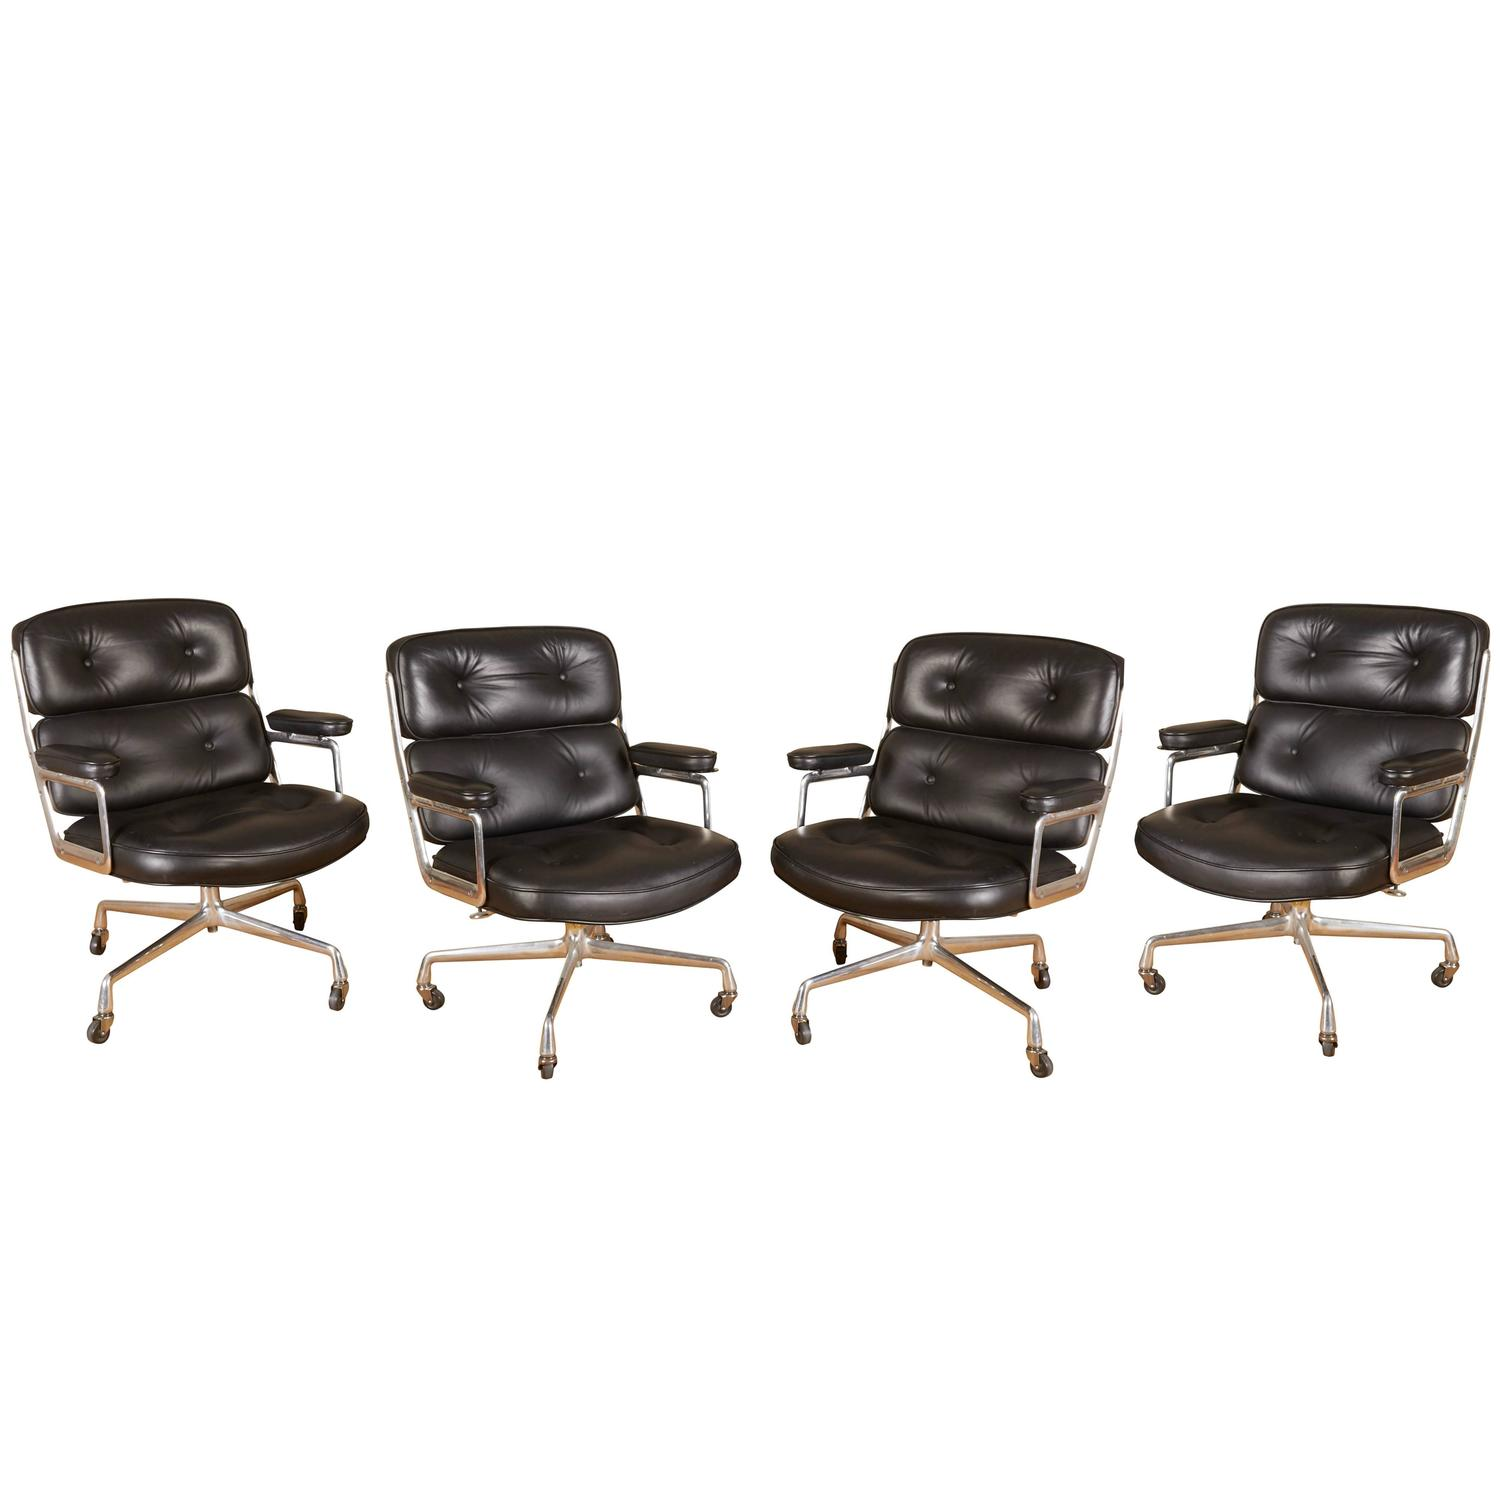 Charles and Ray Eames fice Chairs and Desk Chairs 58 For Sale